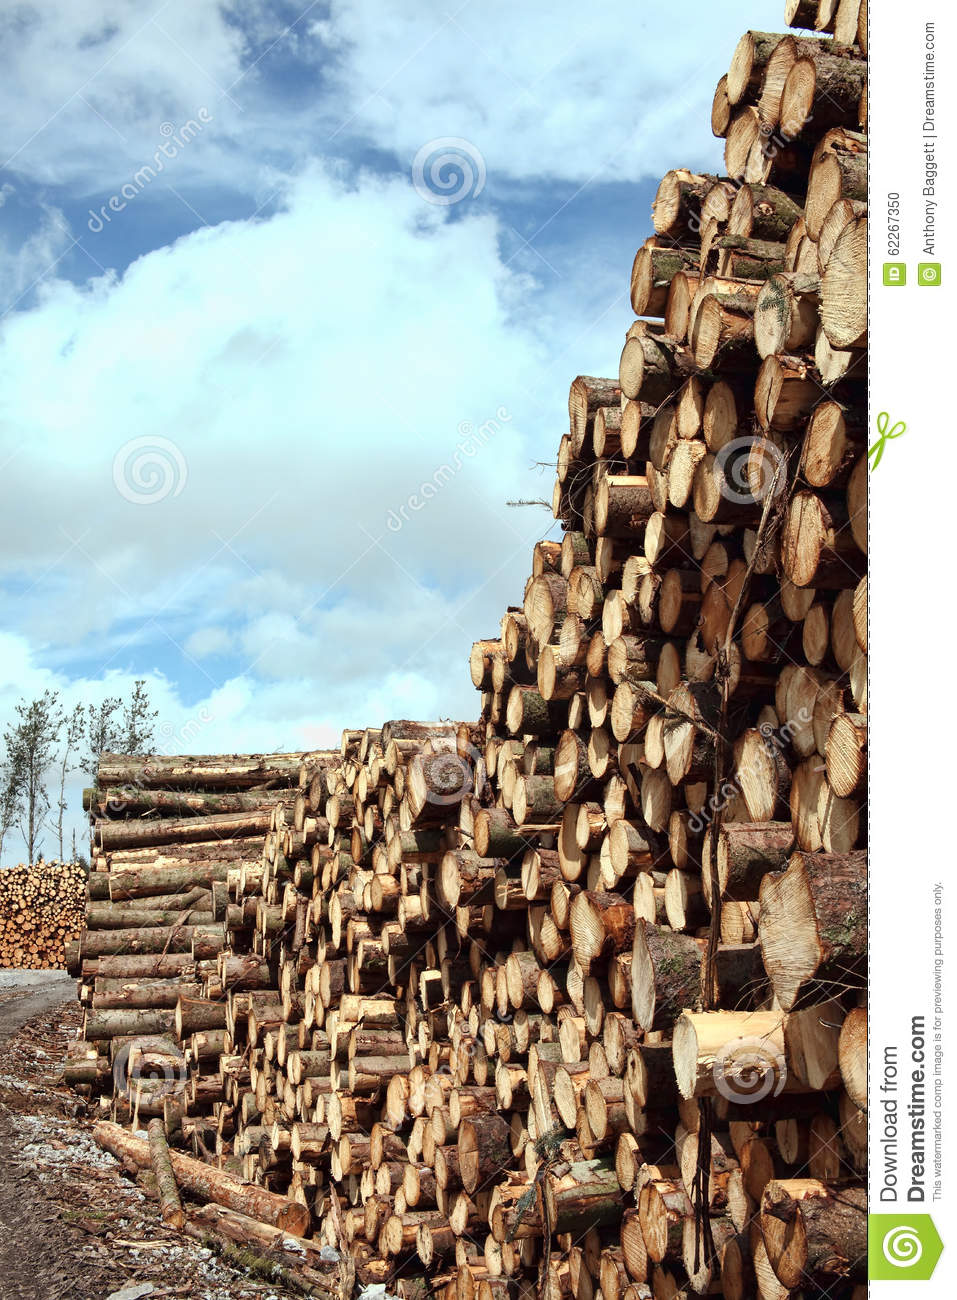 Forest pine trees log trunks stock photo image 62267350 for Pine tree timber